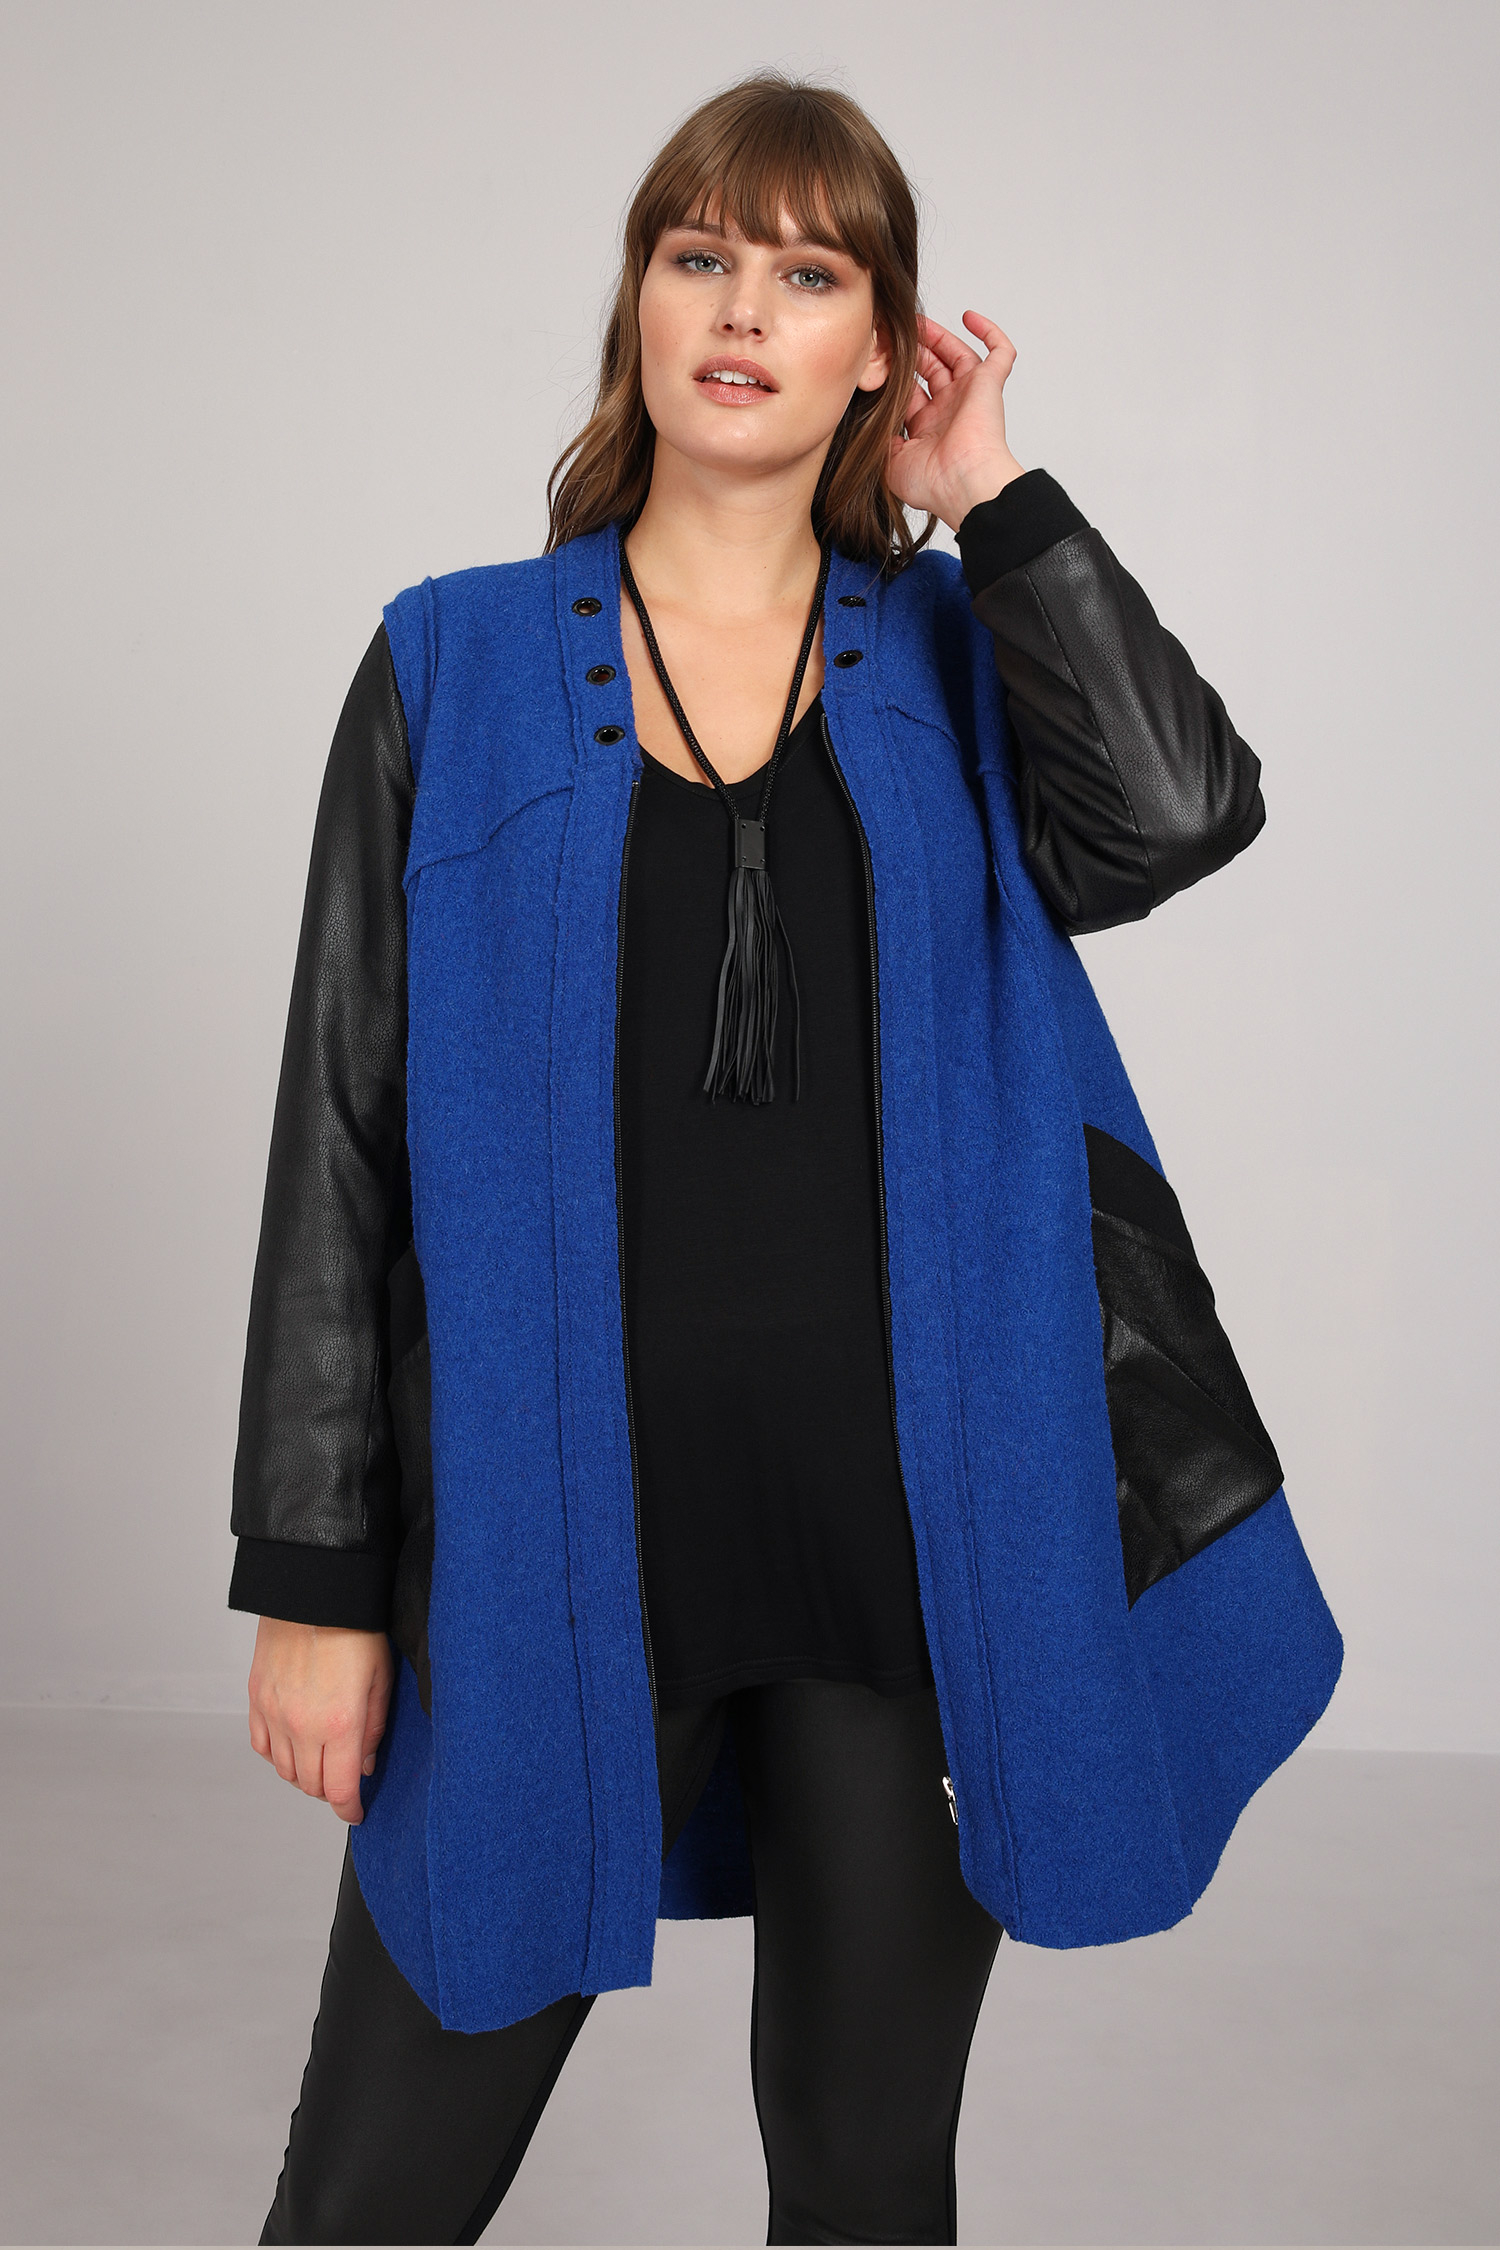 Two-material boiled wool jacket